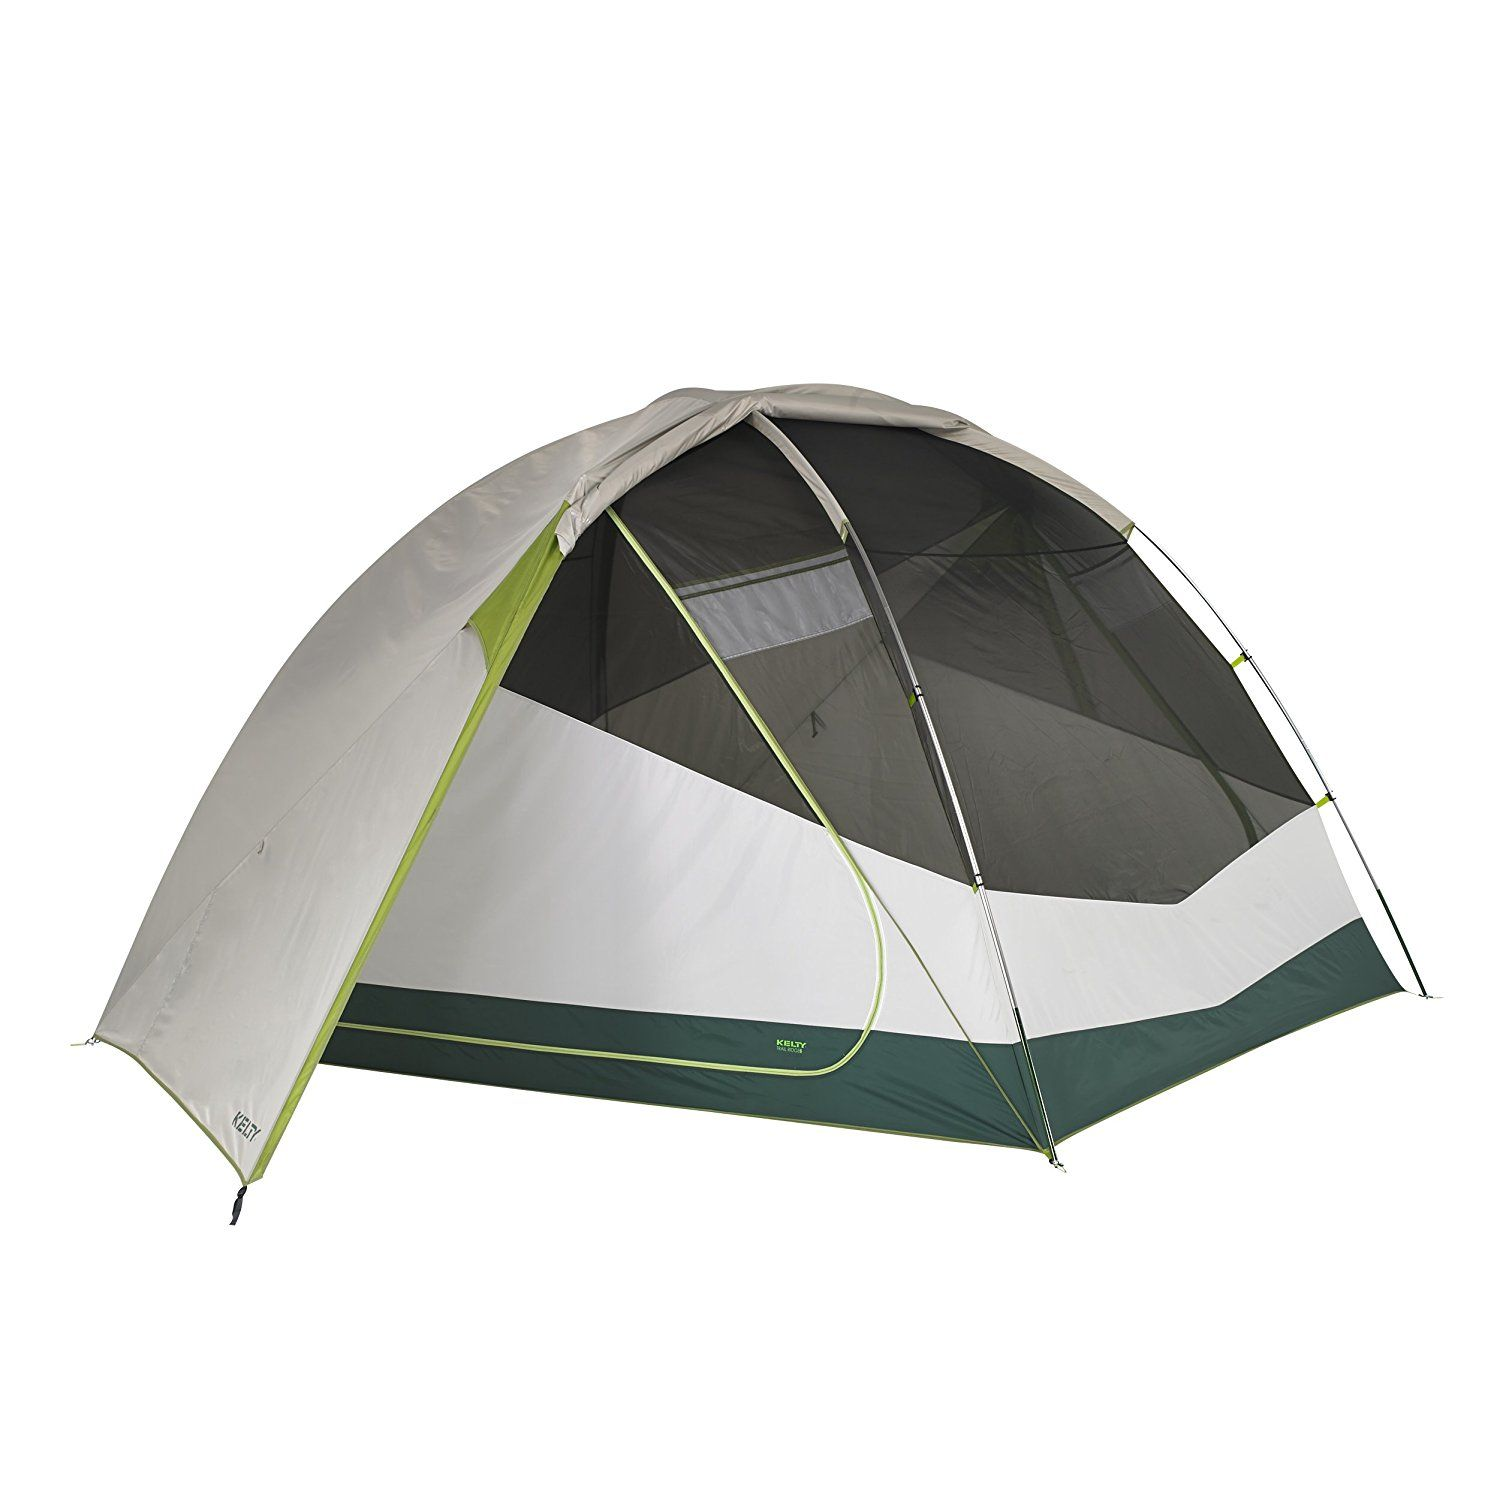 Kelty Trail Ridge 6 Tent To View Further For This Item Visit The Image Link 6 Person Tent Family Tent Camping Best Tents For Camping